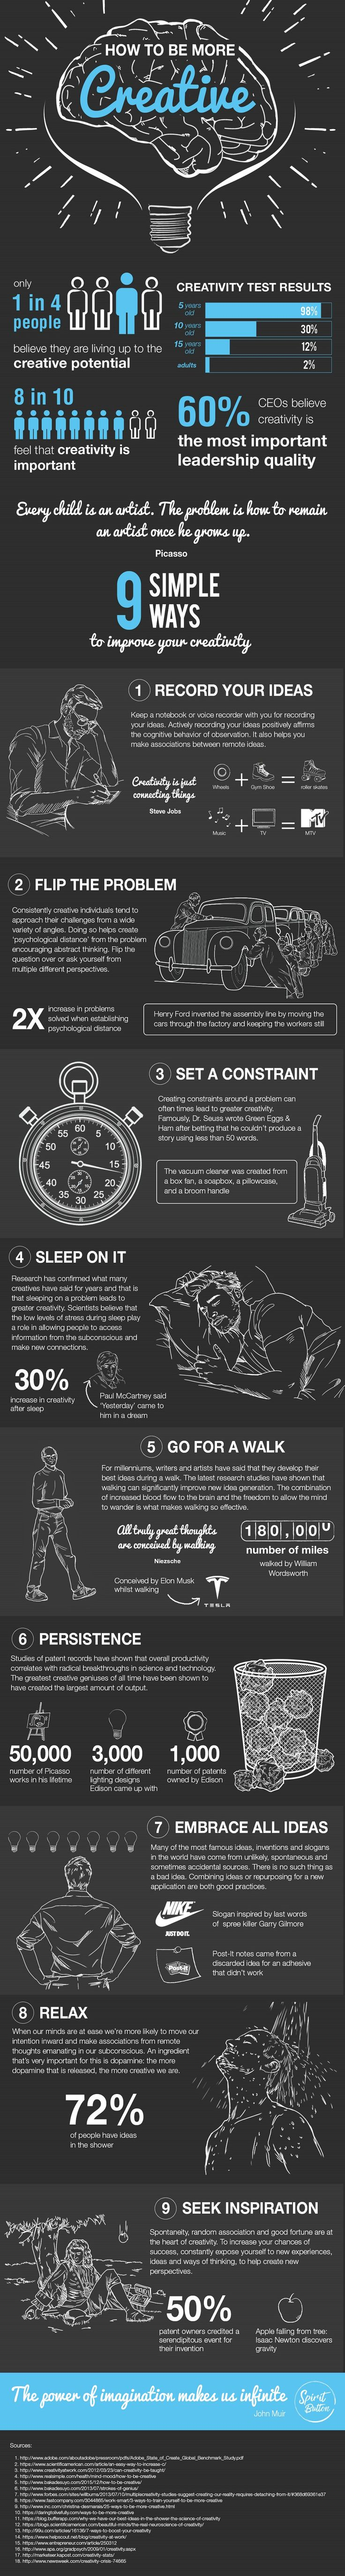 9 Simple Ways To Improve Your Creativity Infographic - http://elearninginfographics.com/9-simple-ways-improve-creativity-infographic/